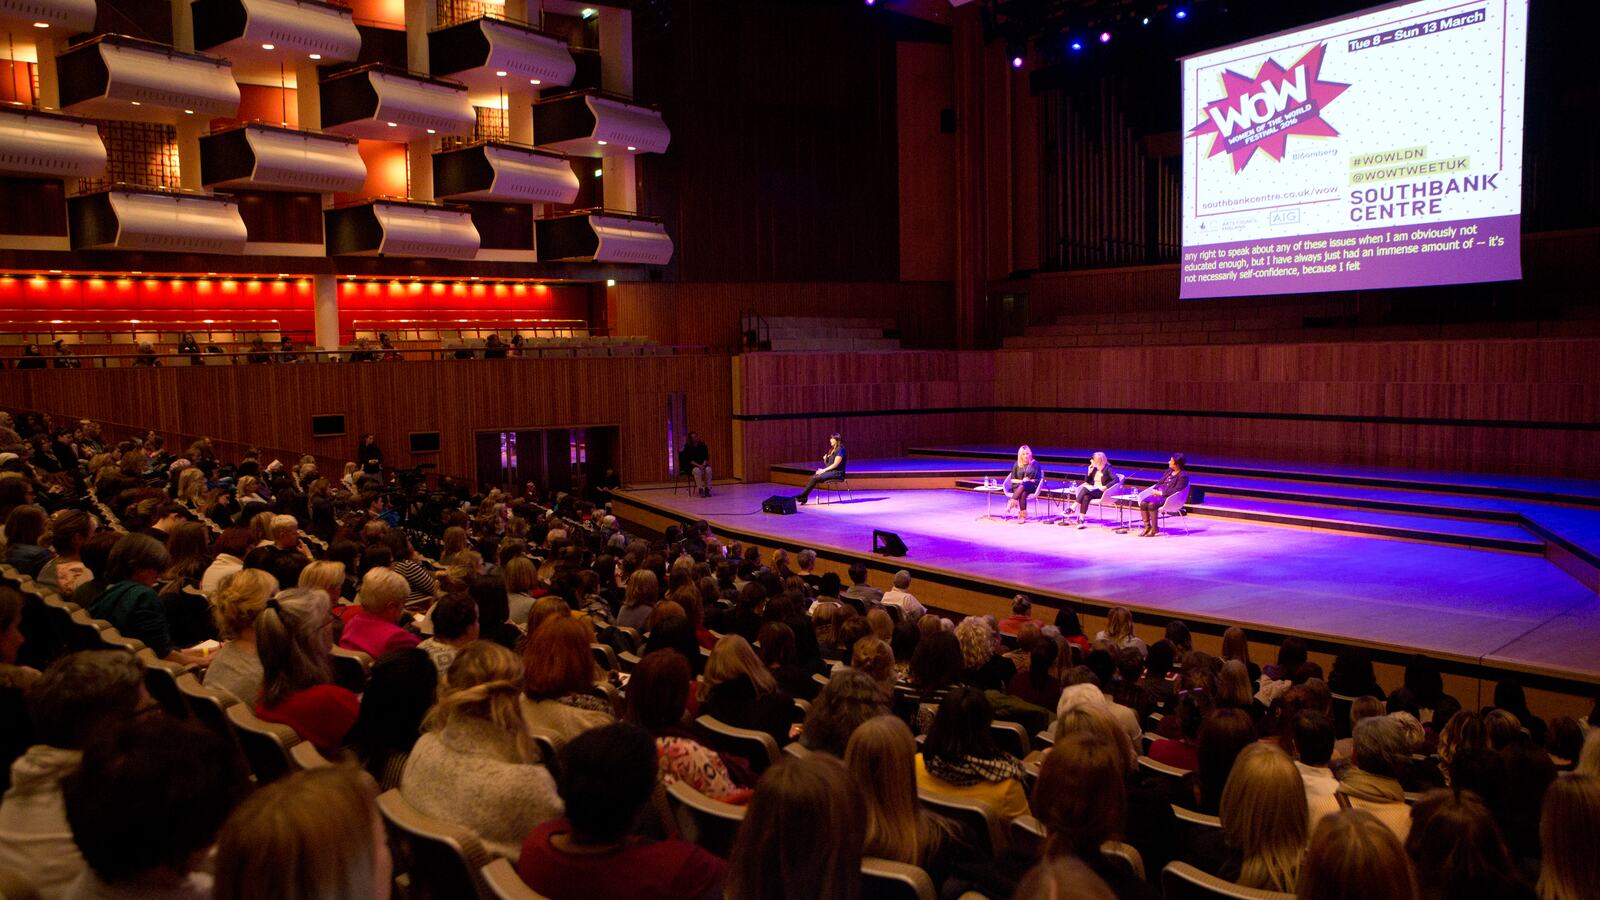 Audience in the Royal Festival Hall